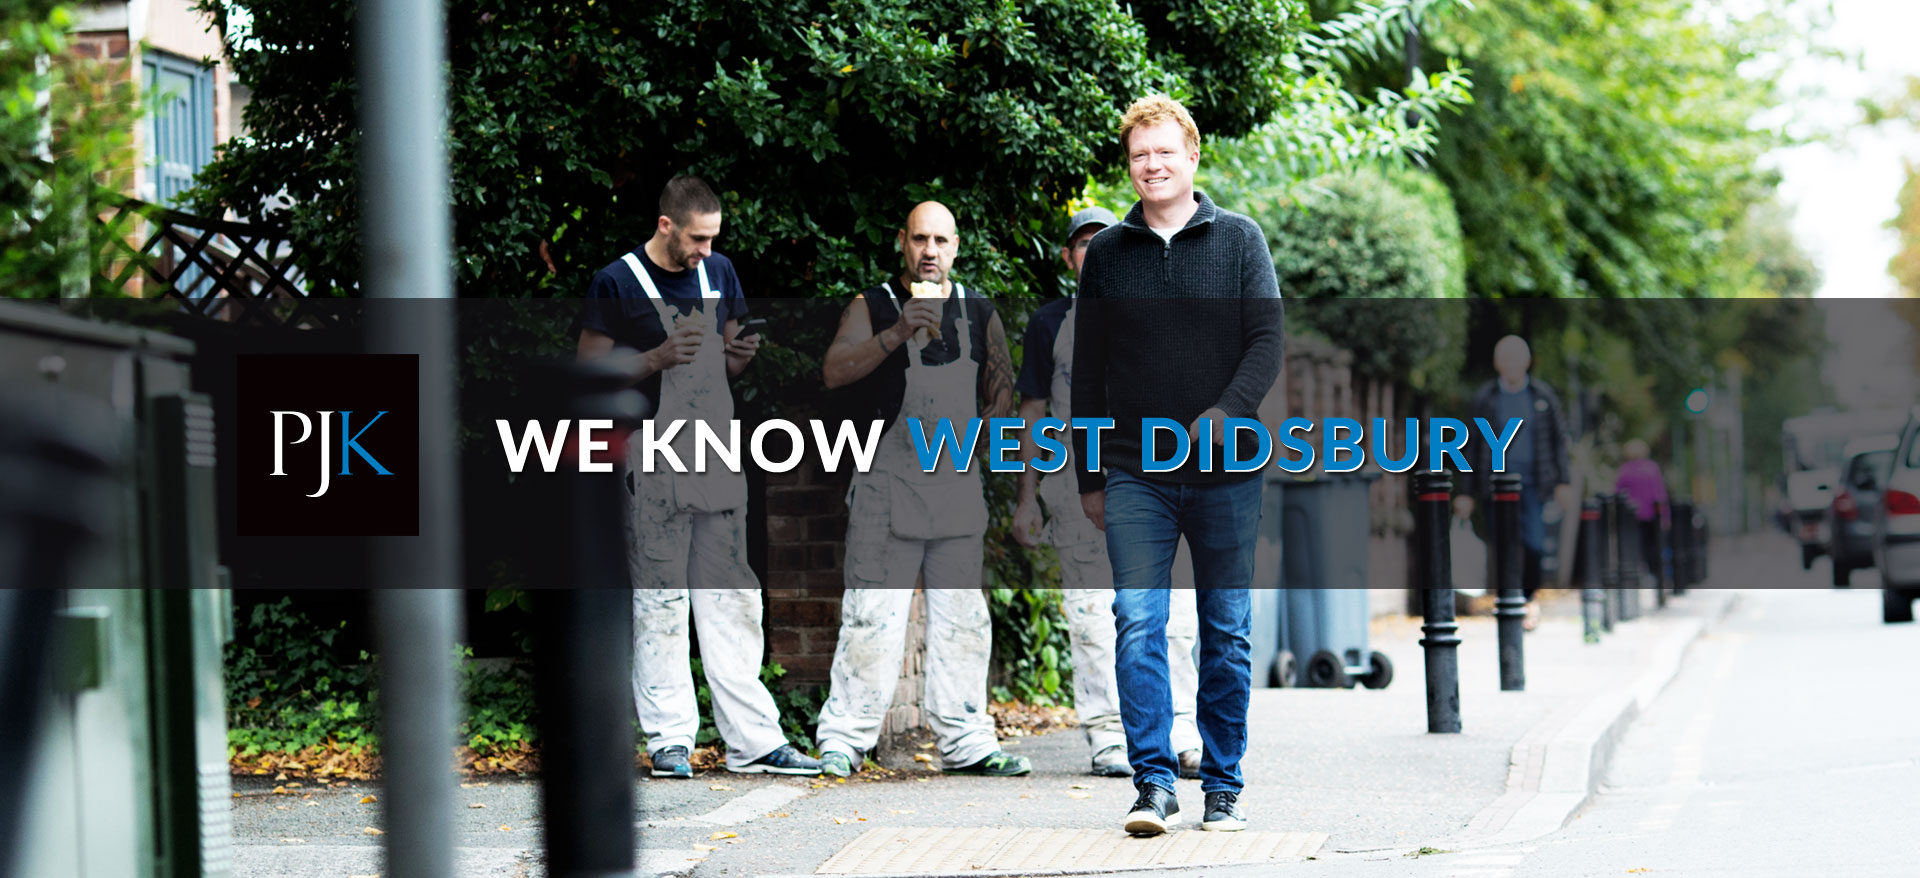 We know West Didsbury